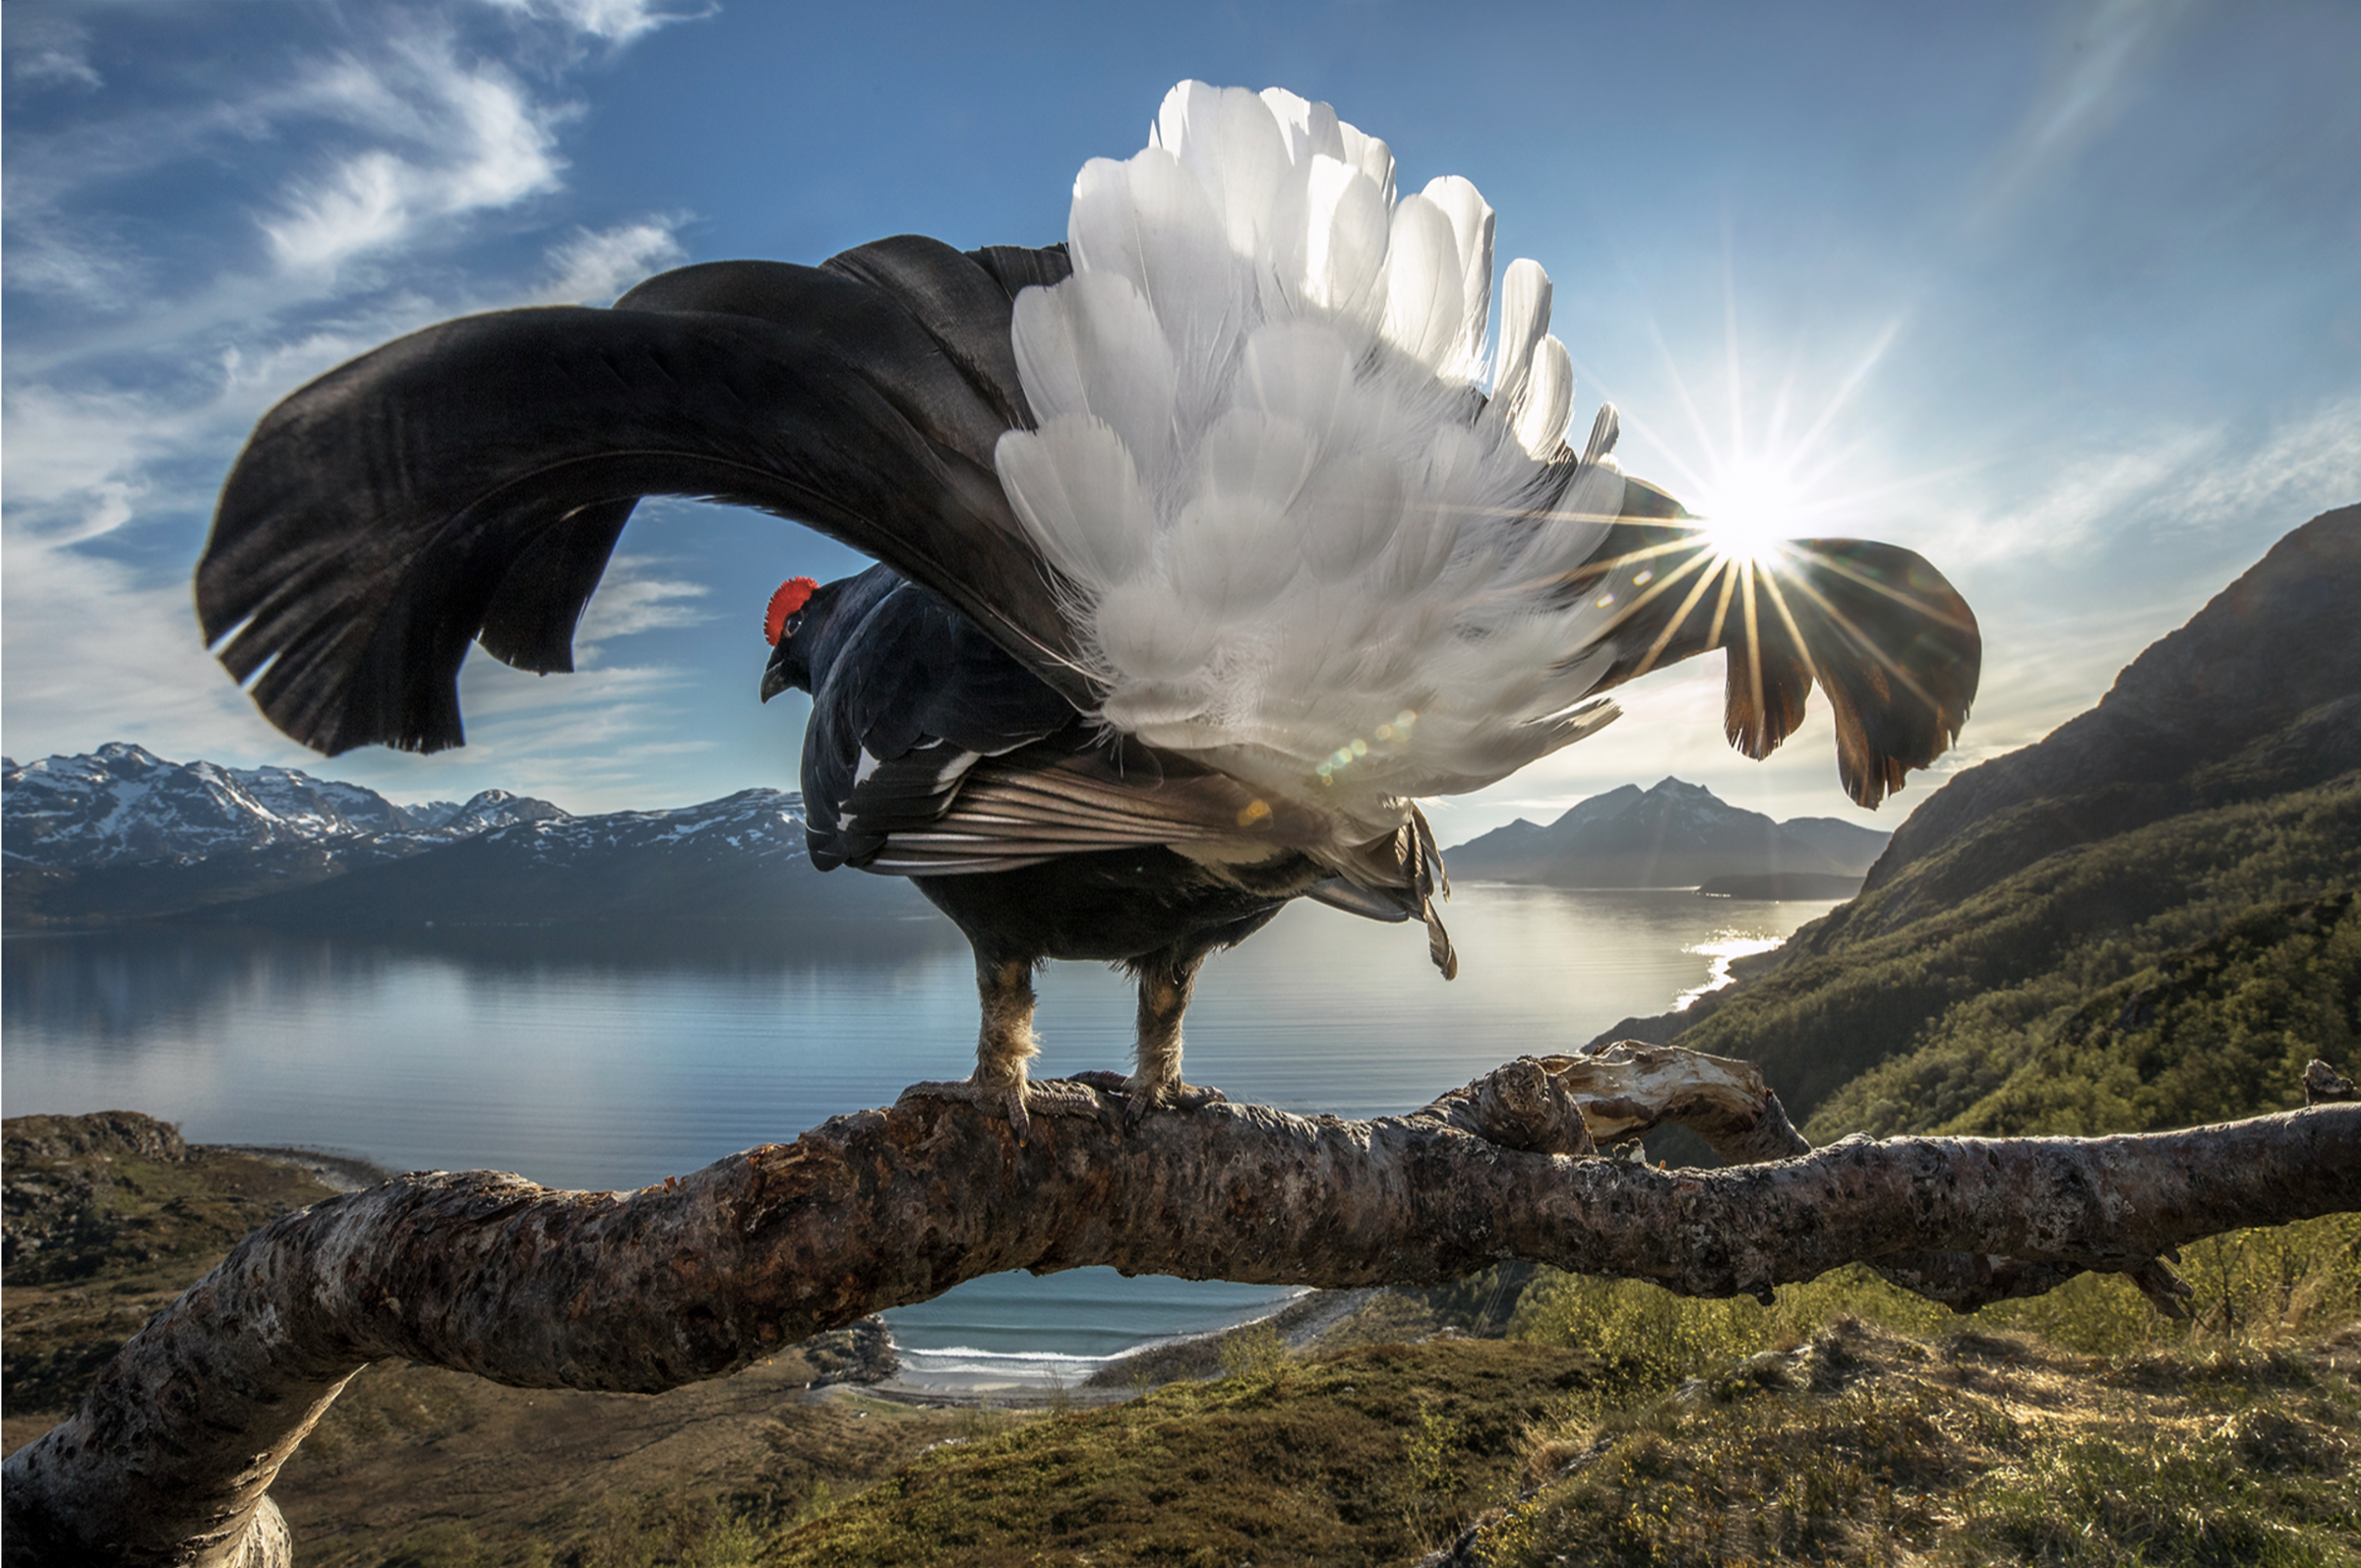 <strong>Taking Center Stage by Audun Rikardsen</strong><em>—Grand Prize Winner</em> <p>While the beauty of Norway's spectacular northern coastline might be lost on this male black grouse (Tetrao tetrix), the prime vantage point offered by its perch is certainly not. For a ground-dwelling bird known for exuberant territorial displays during the breeding season, what better place to see and be seen than this branch, which provides an eagle's-eye perspective of the terrain below. What initially drew photographer Audun Rikardsen to this spot high above the sea was, in fact, a resident golden eagle (Aquila chrysaetos) that frequented the perch. Having constructed a blind nearby, Rikardsen spent many frigid winter days photographing the eagle. But by spring, it had been replaced by a new subject: a black grouse in proud display. Not only did the grouse quickly become accustomed to Rikardsen's rapidly firing camera shutter and flash, he says, it was almost as if the bird enjoyed being in the spotlight.</p>